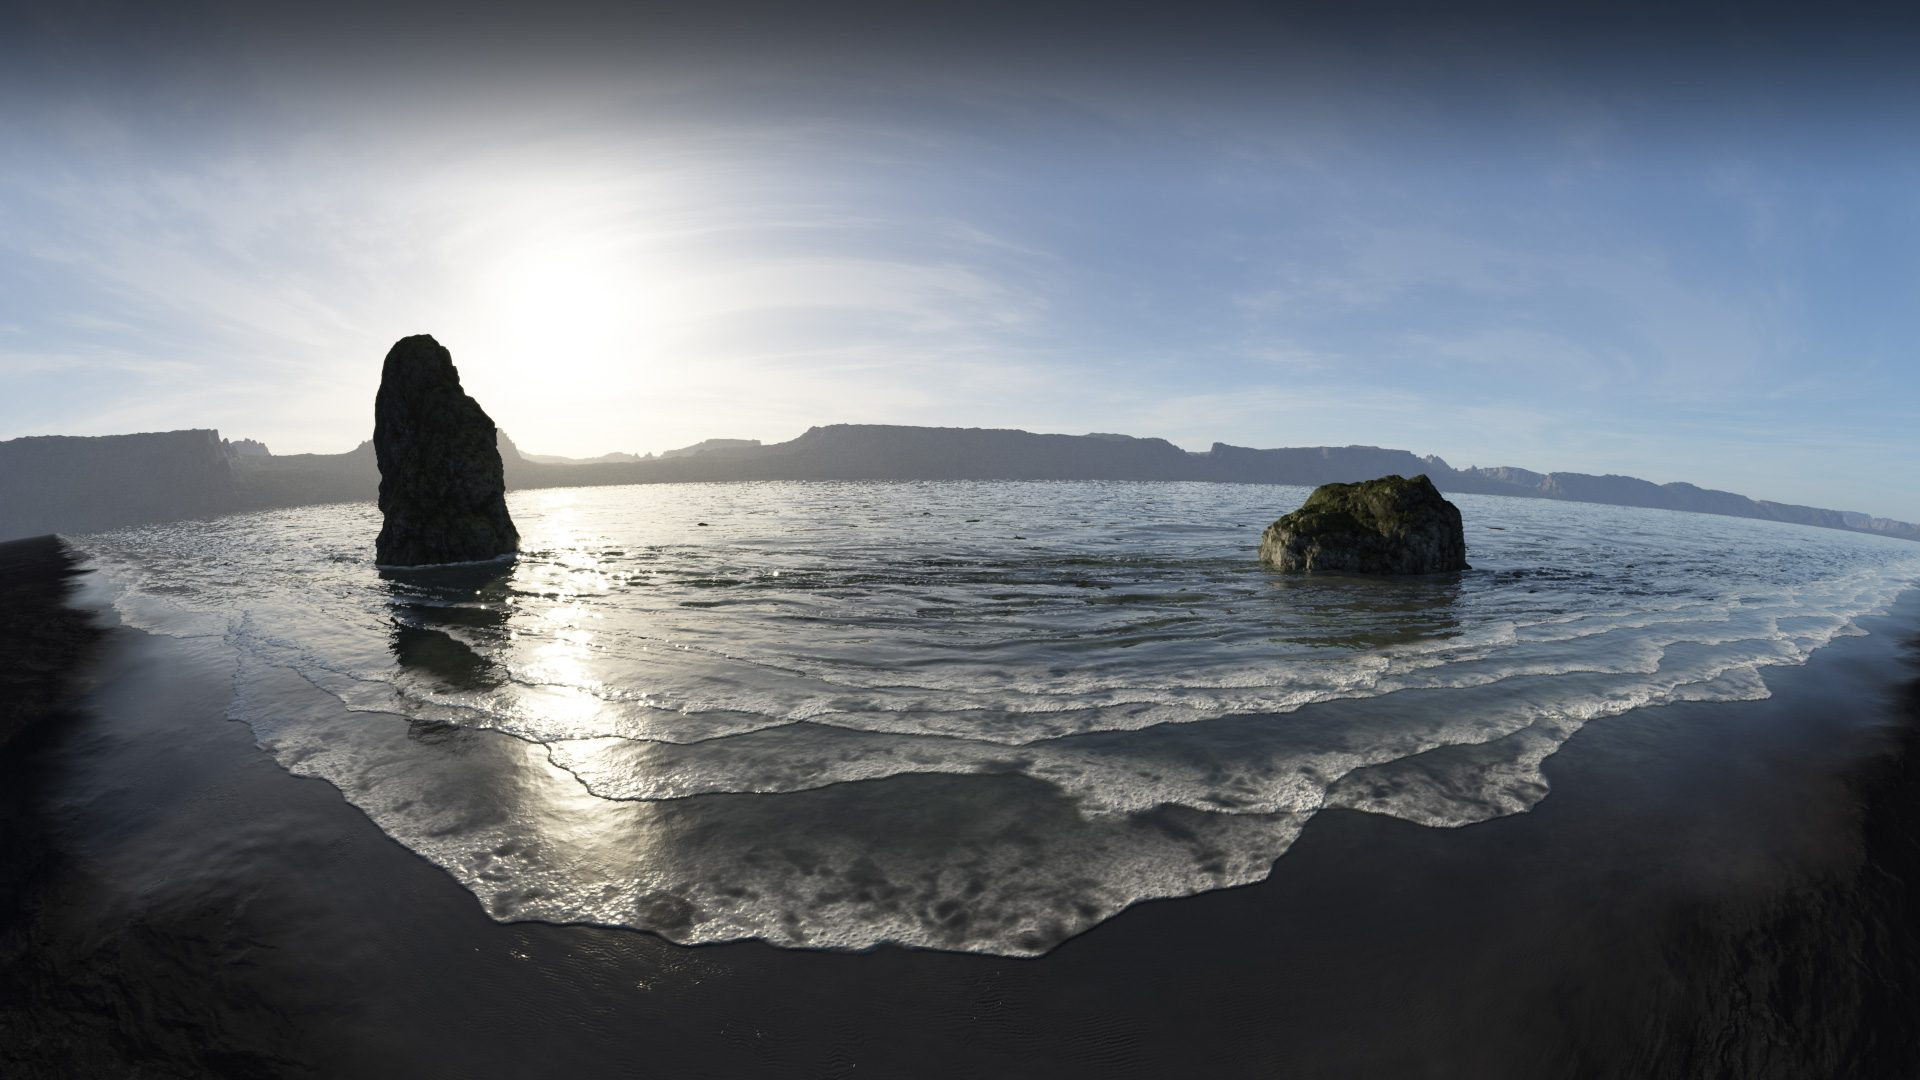 Iceland-beach_ice-chunk14_water_black-sand-beach3_fisheye5_HD_fade.jpg